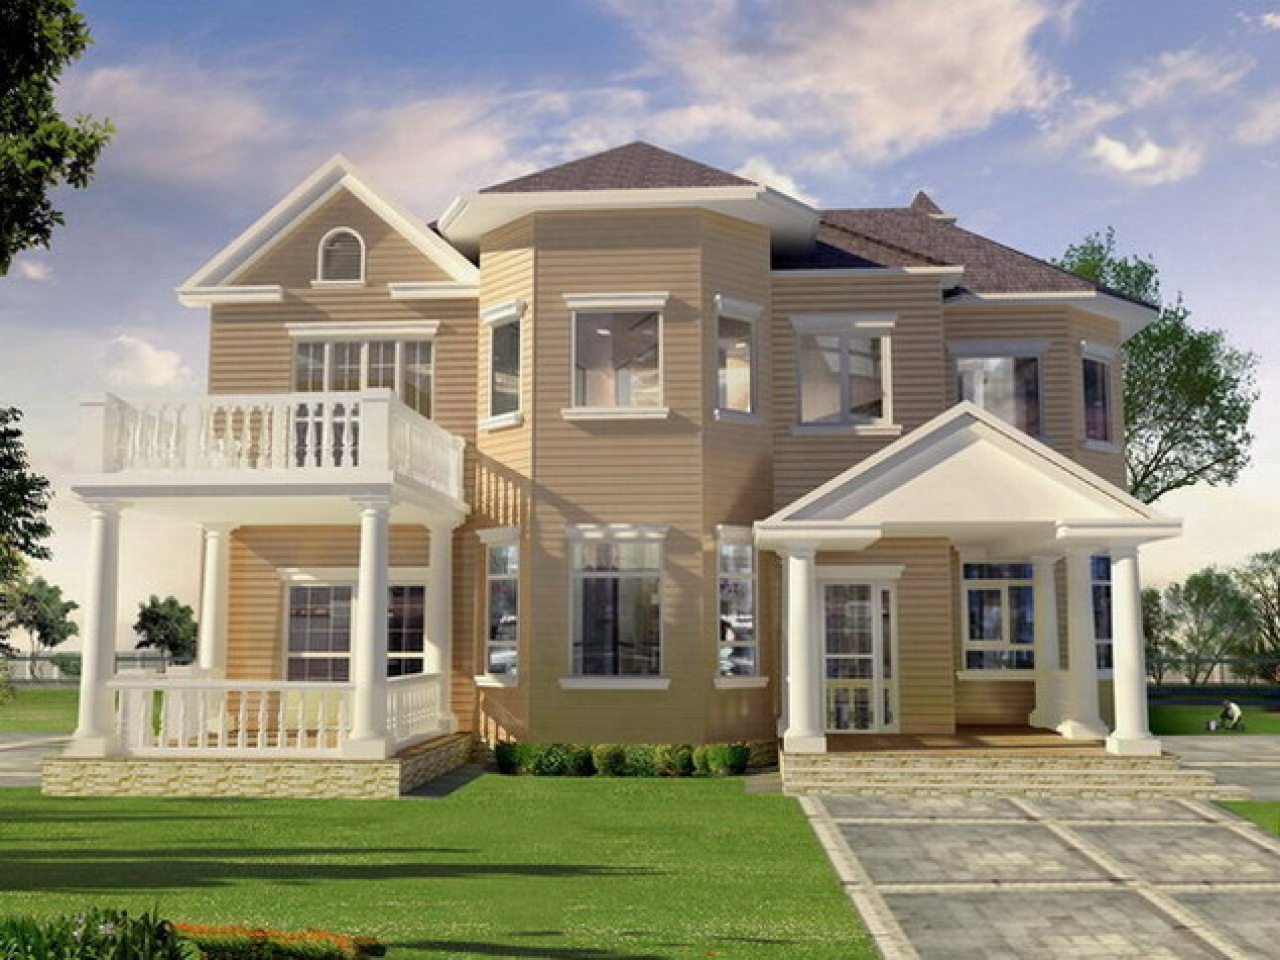 Country Home Exterior Designs Exterior Home House Design Two Story House Plans With Balconies